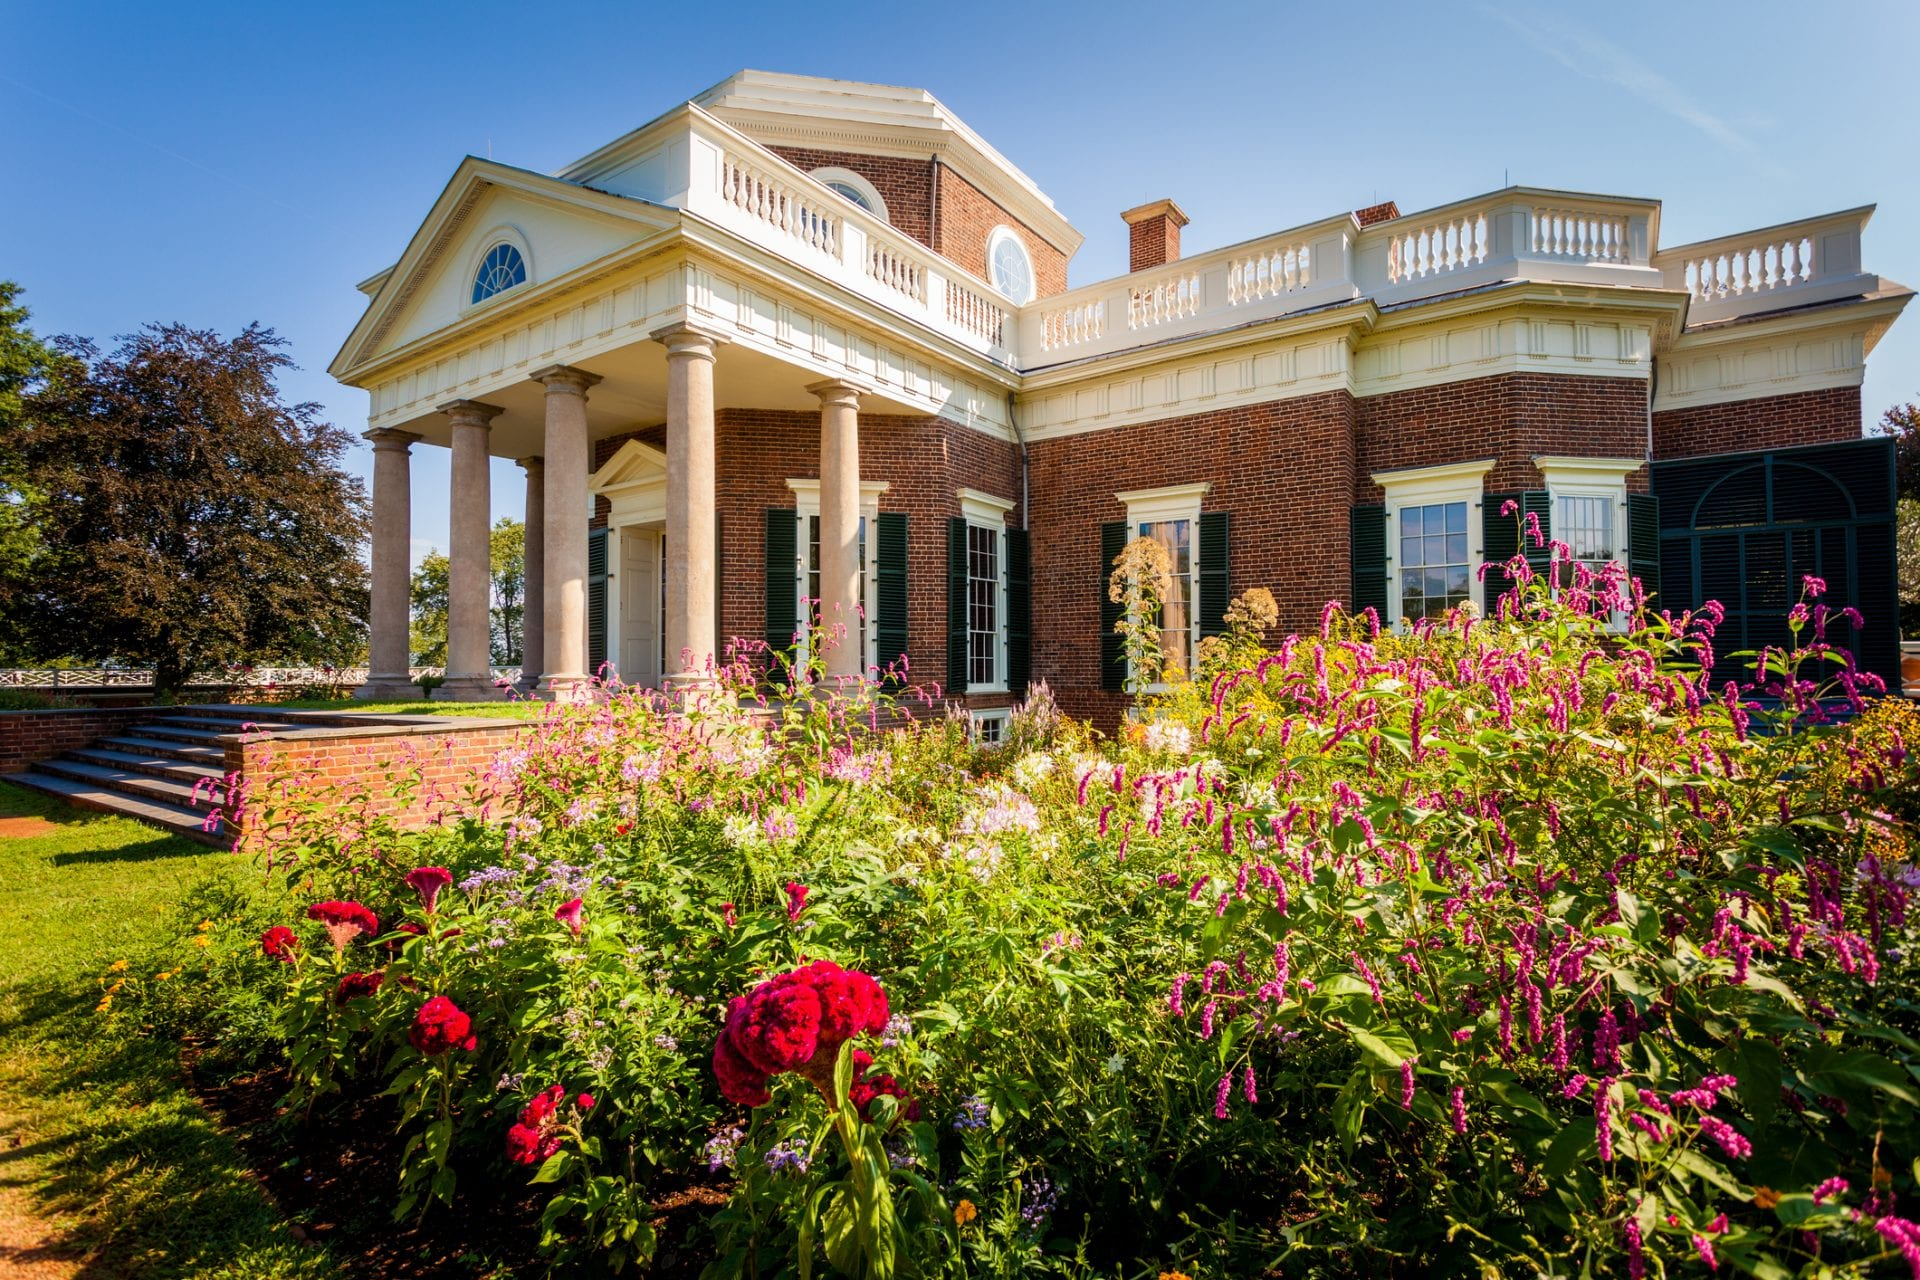 Monticello, House of Thomas Jefferson in Virginia, USA